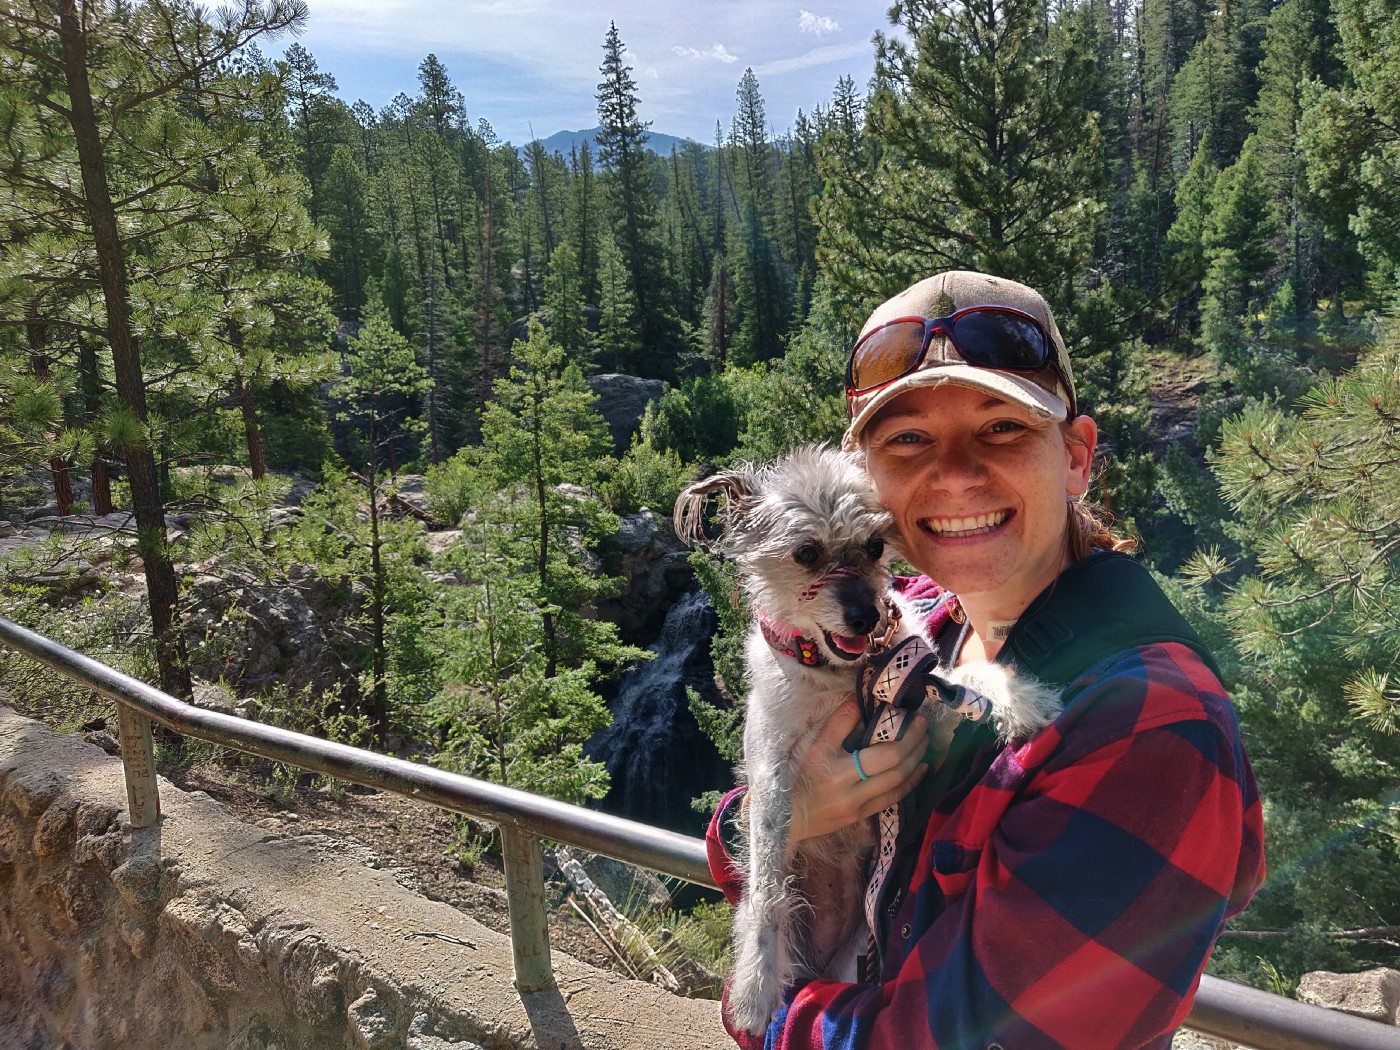 My dog Latty and I at Jemez Falls, New Mexico 2019.